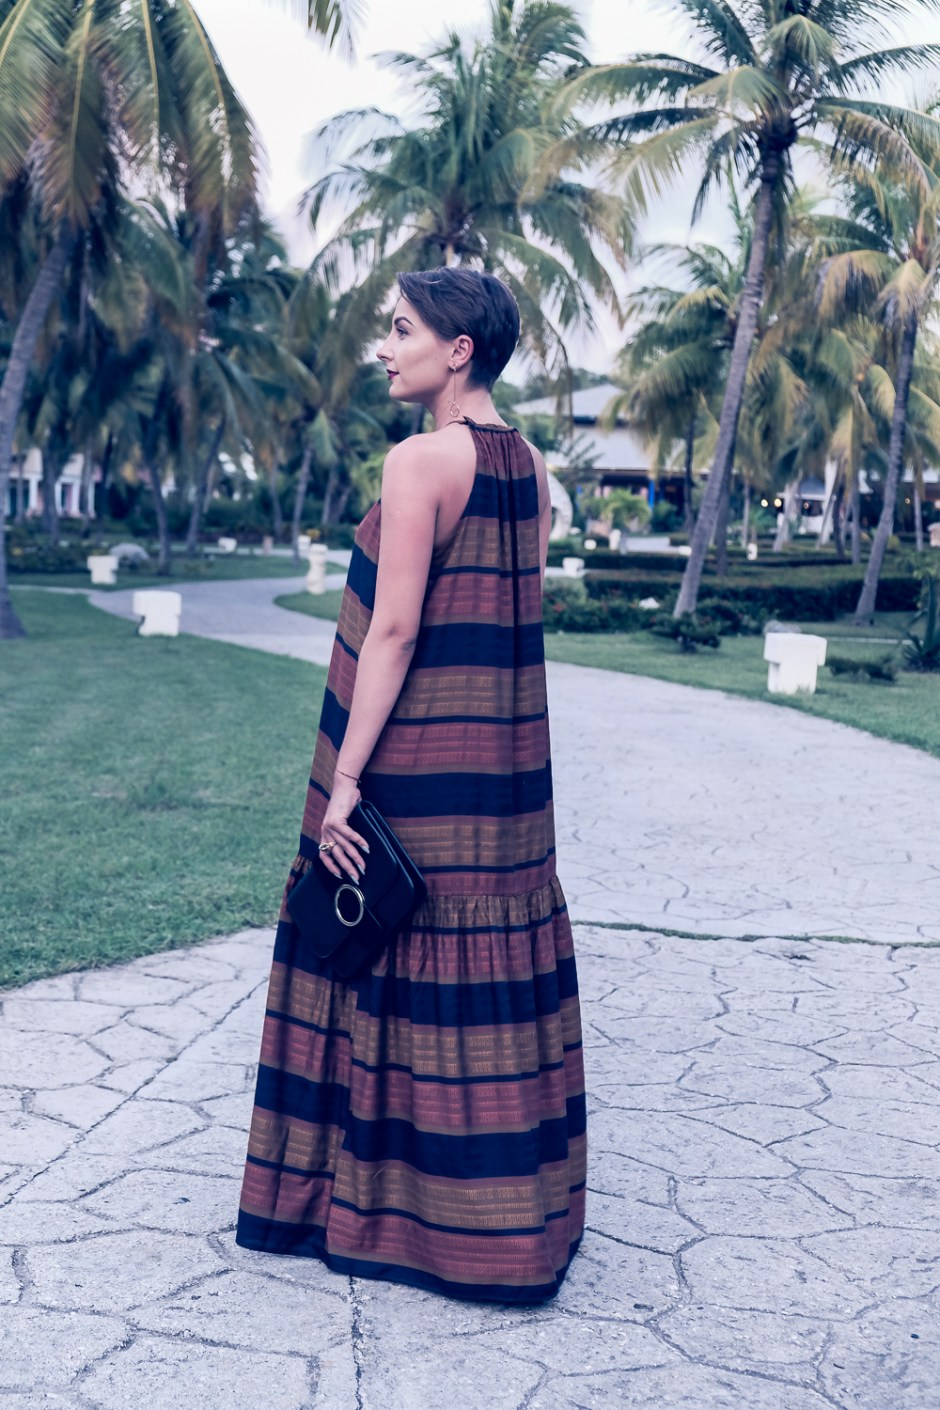 Our ultimate style guide for an exotic vacation